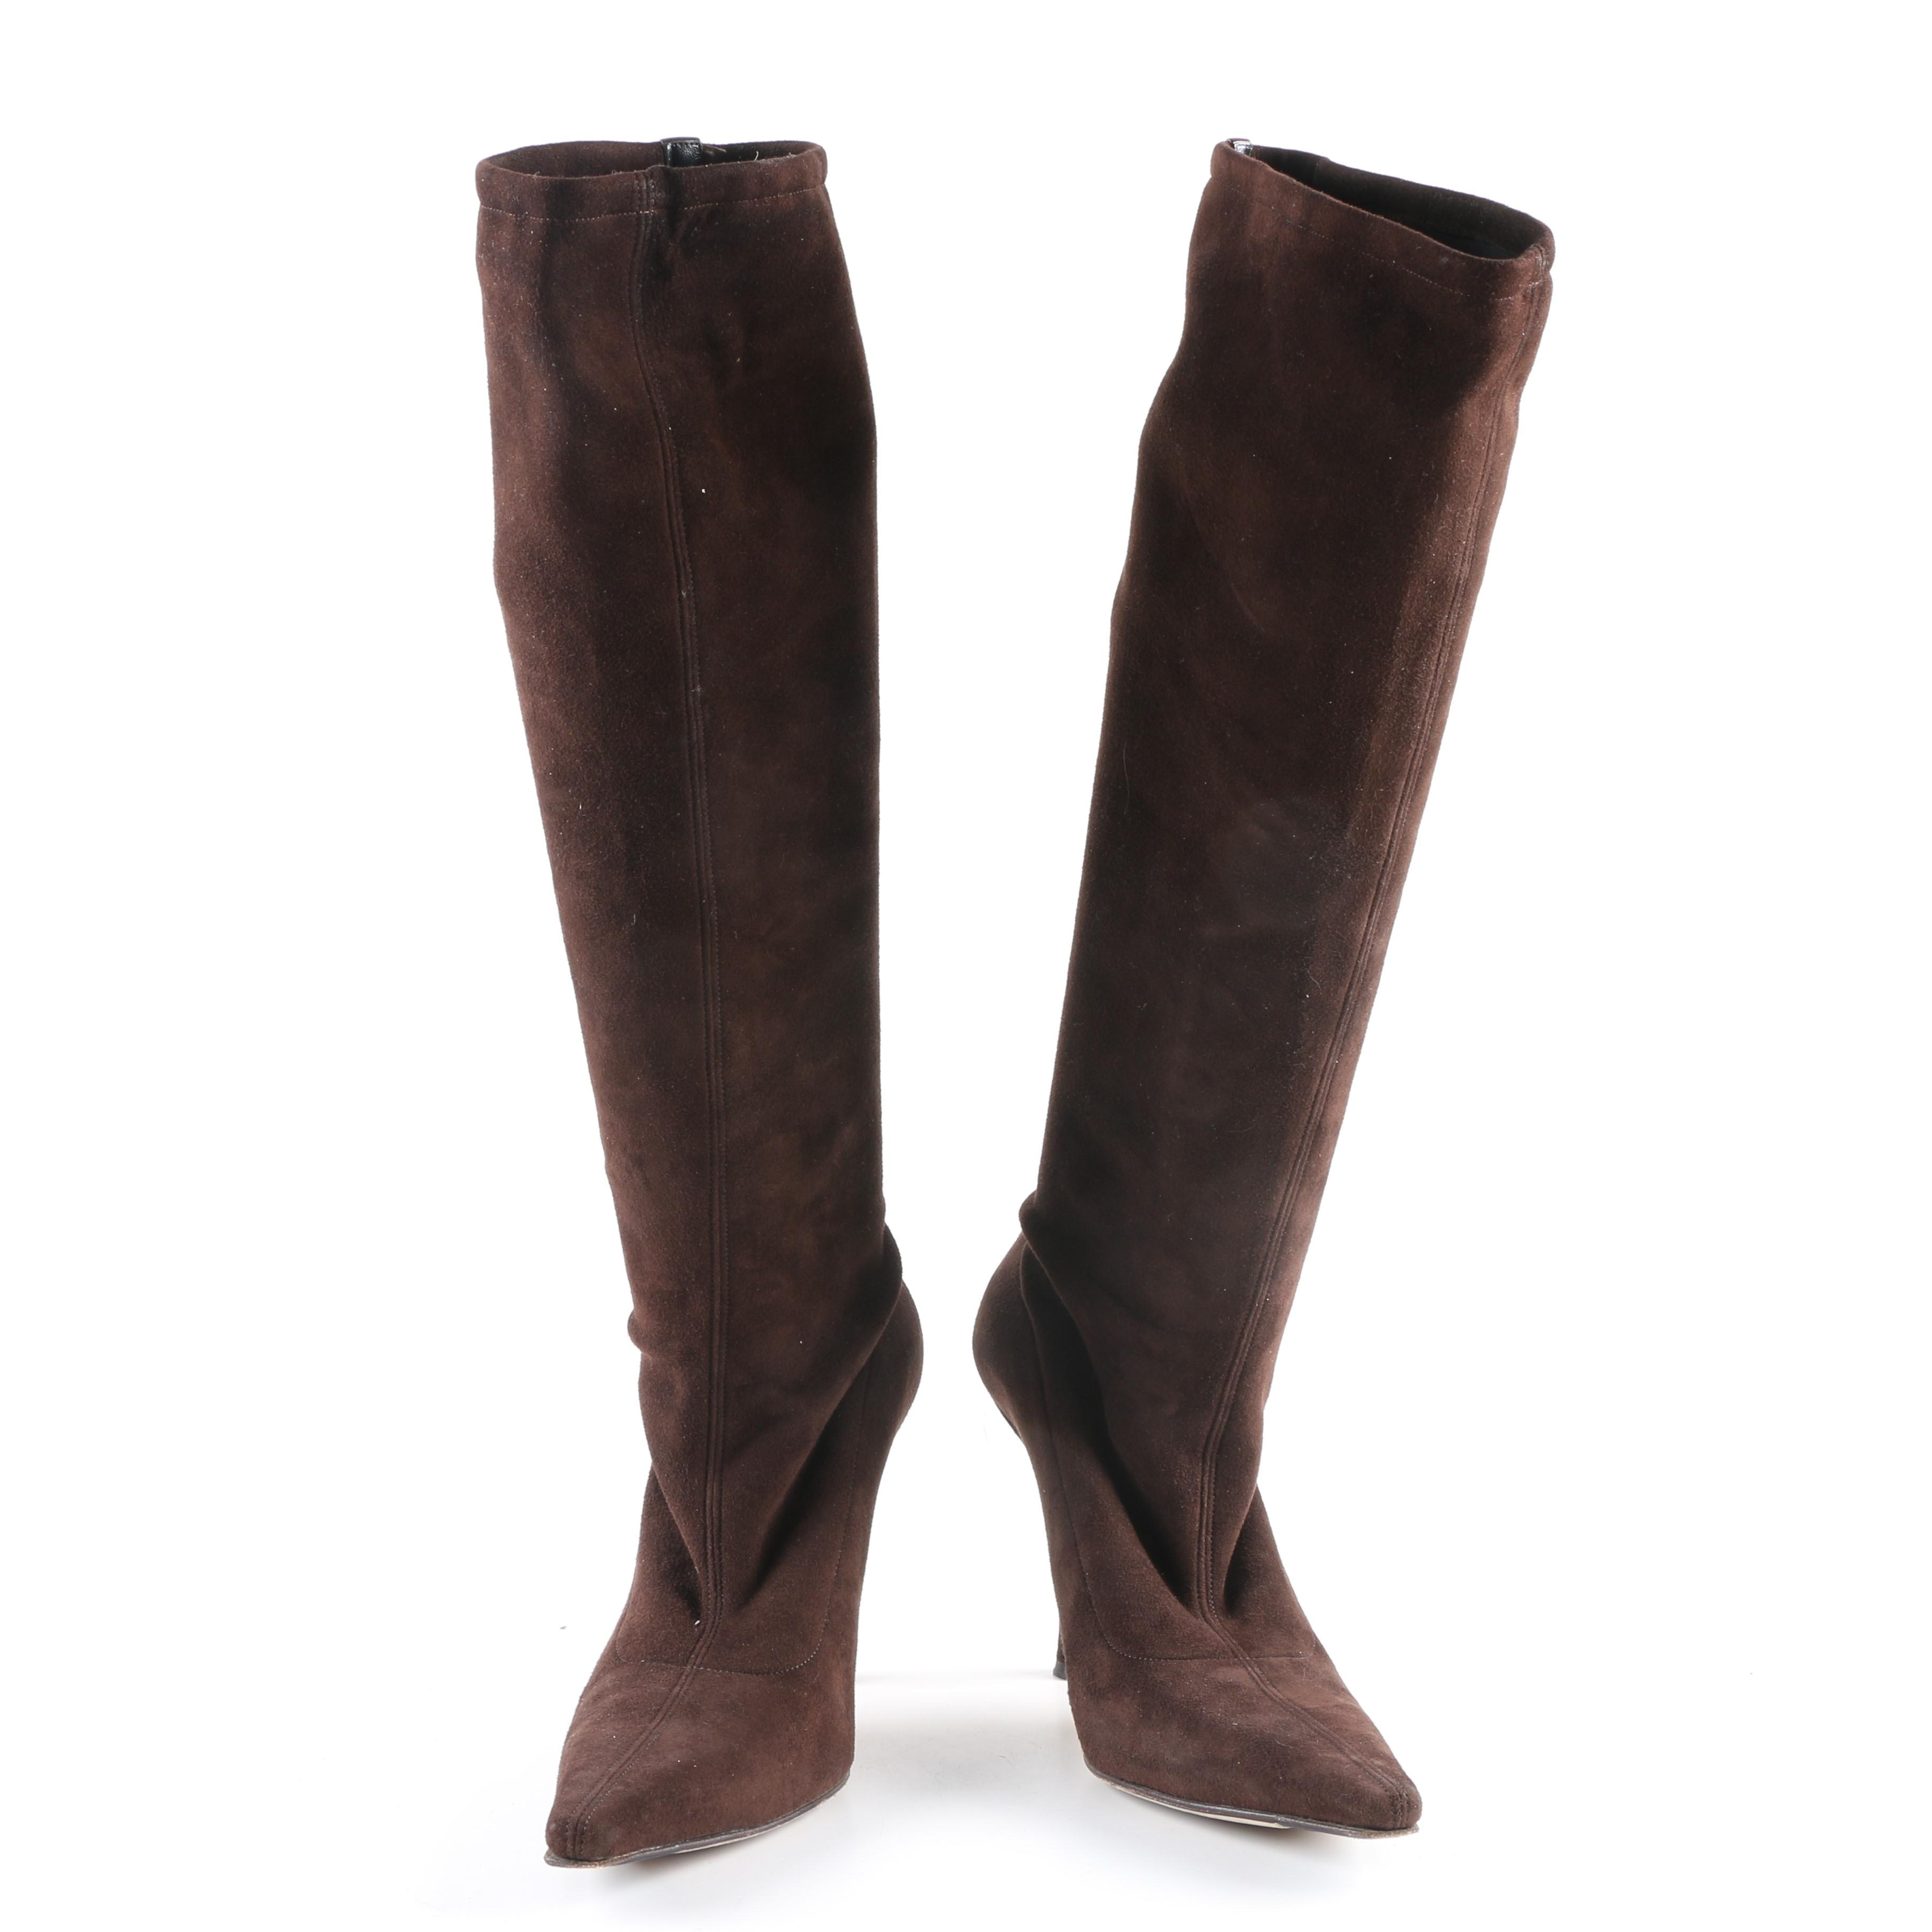 Jimmy Choo Brown Suede Knee-High Boots